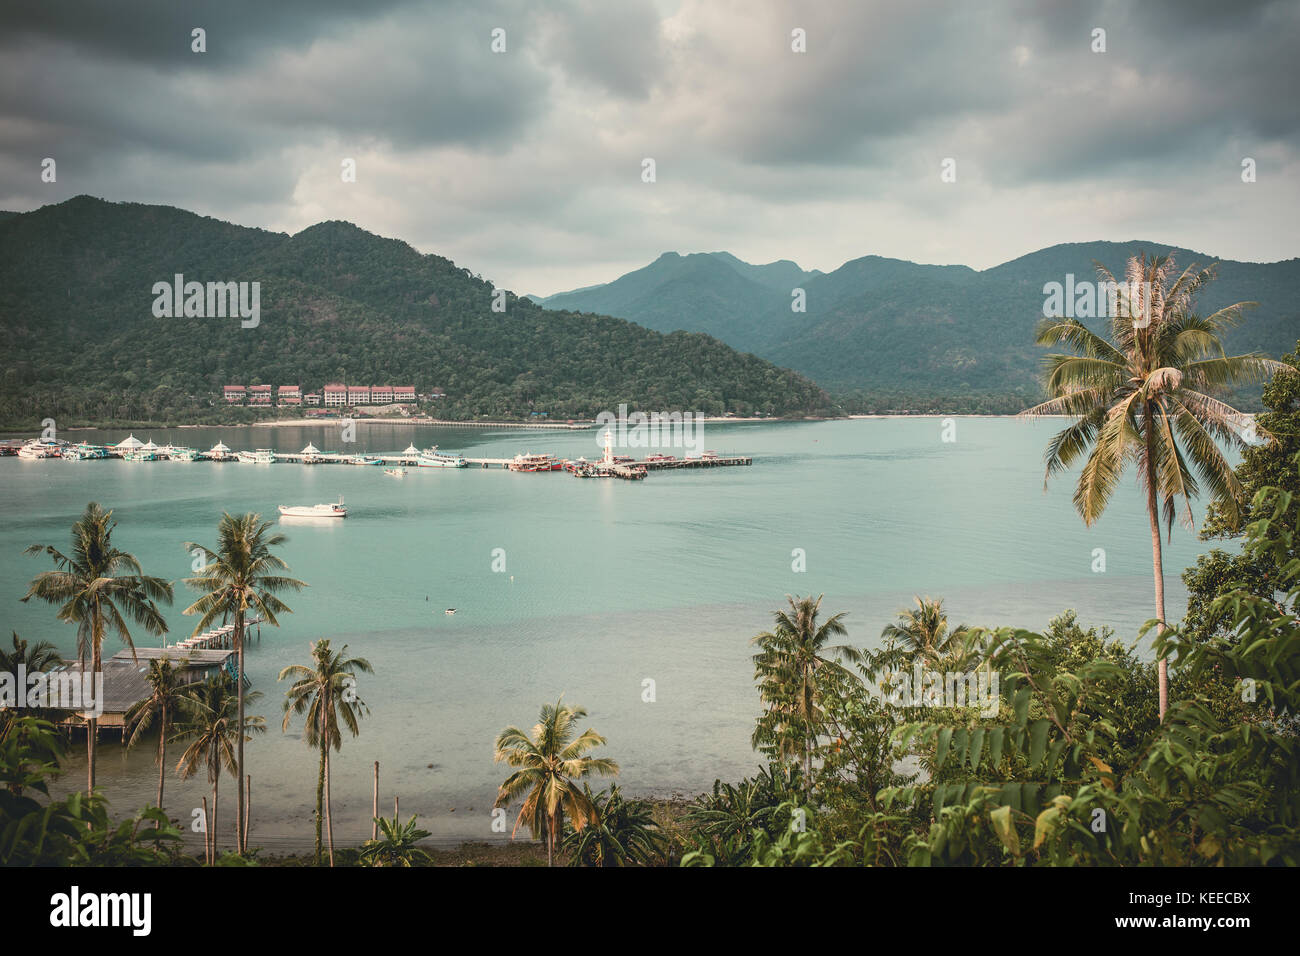 Beautiful landscape with a Bang Bao bay view on Koh Chang island in Thailand. Vintage color filter applied - Stock Image